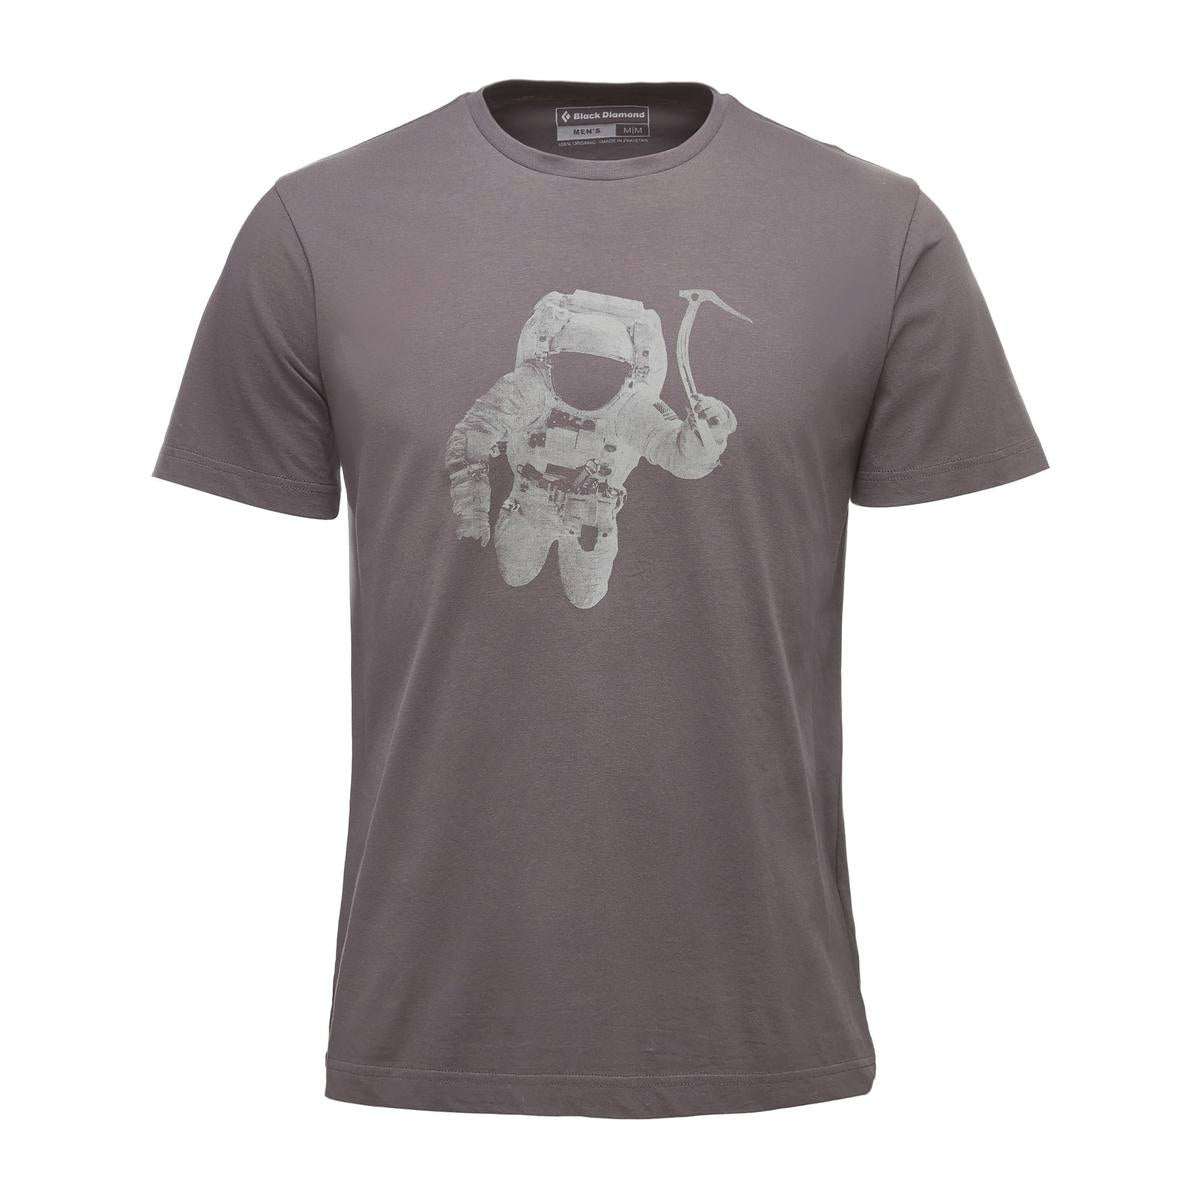 Black Diamond M SS Spaceshot Tee Men's Shirt